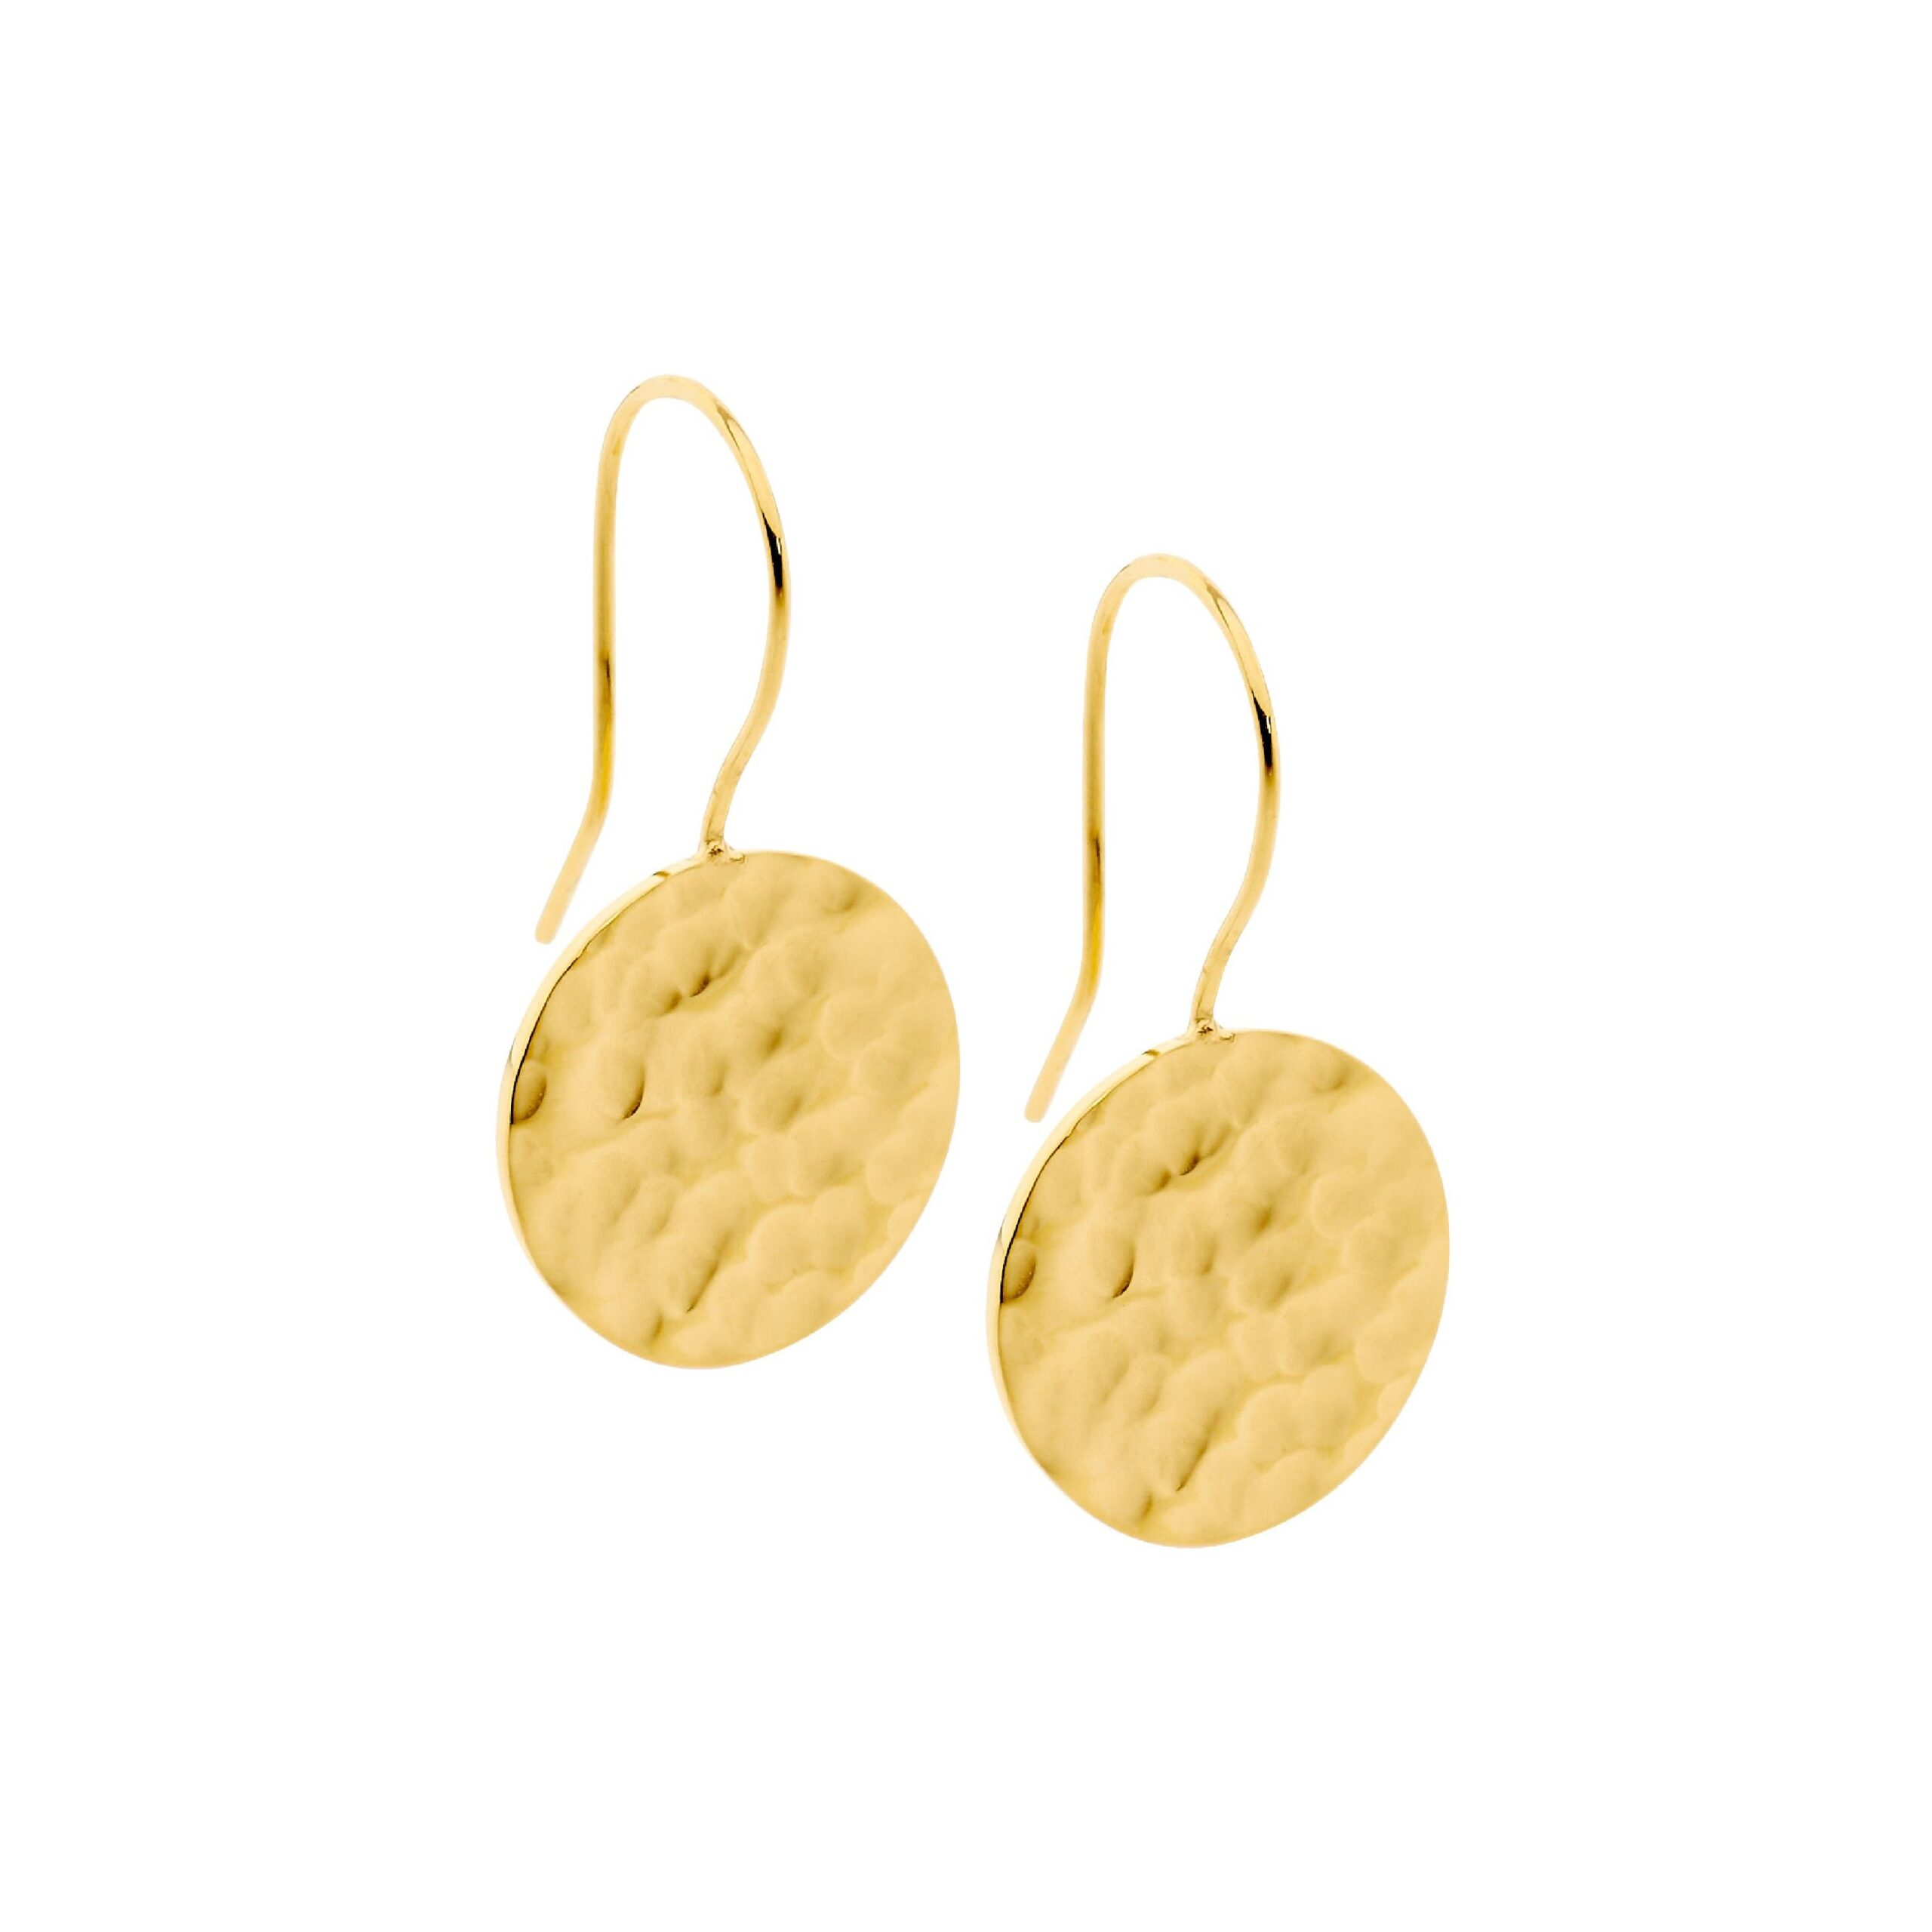 Ellani Stainless Steel IP-Gold Earring